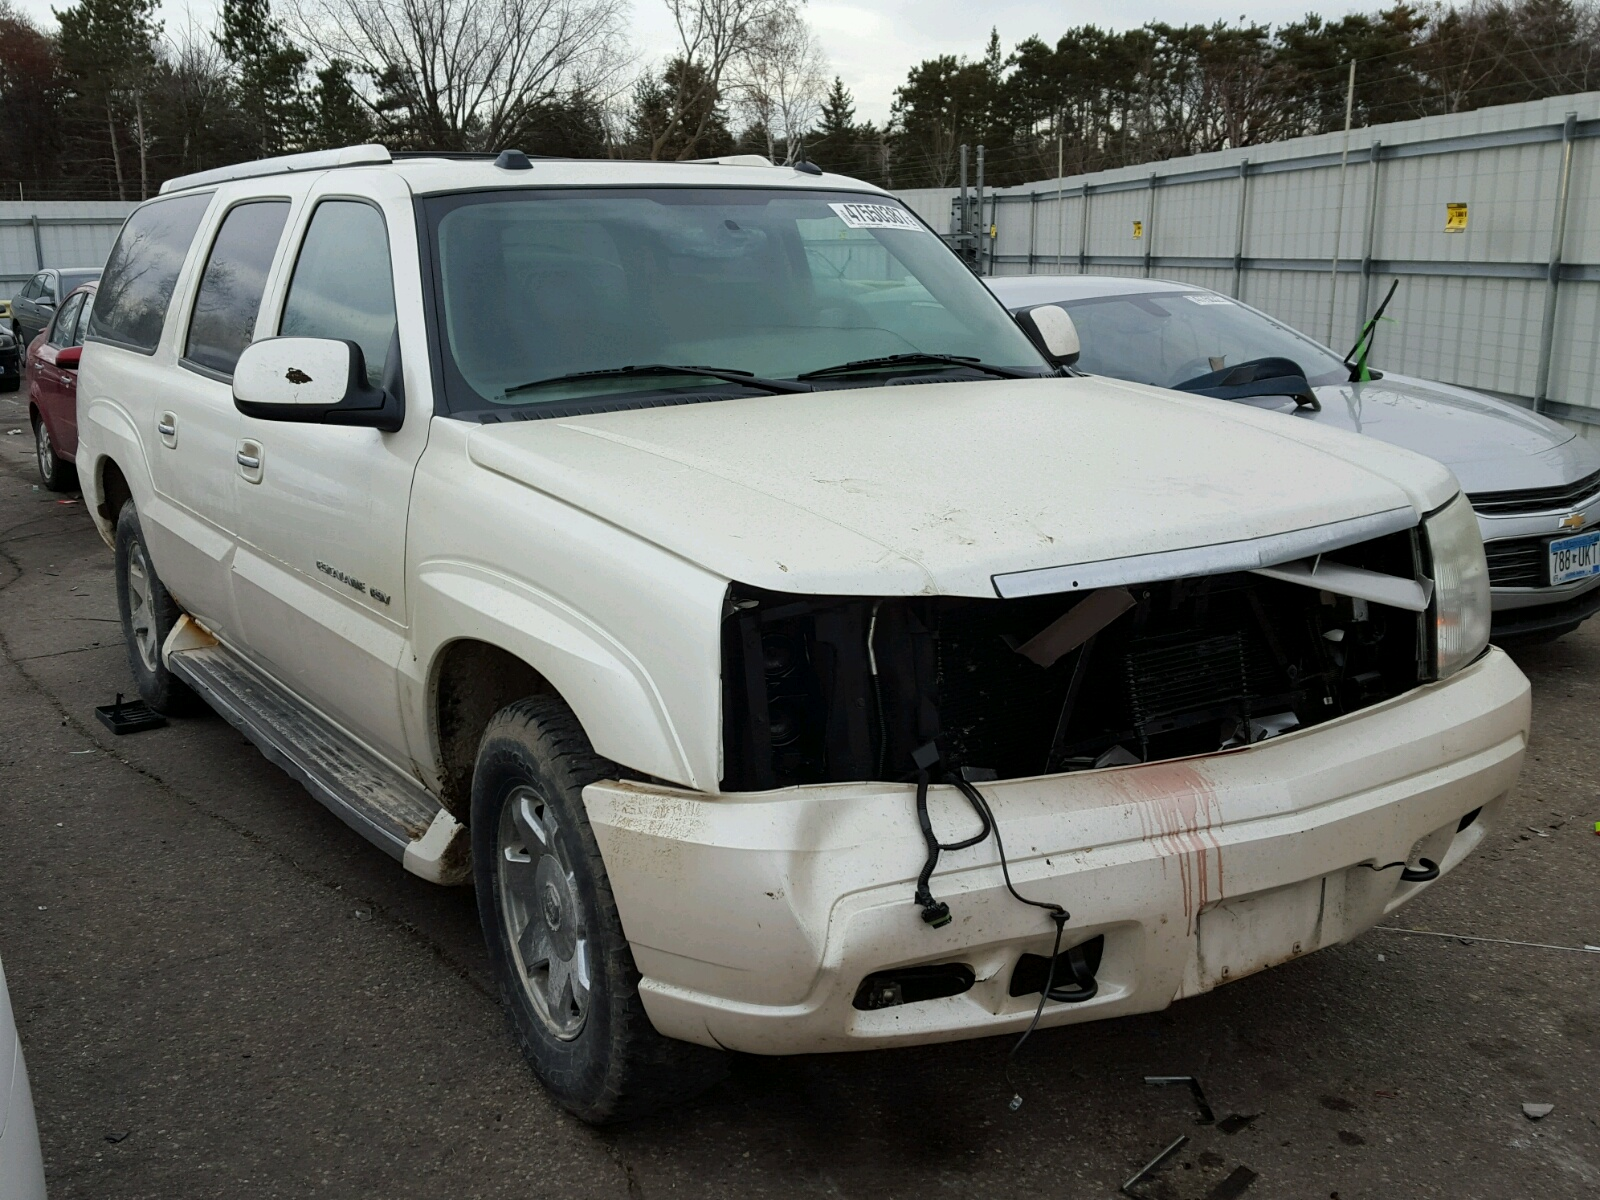 tx l title auto auctions rebuilt dallas online copart lot sale for en black cadillac view of carfinder on escalade in cert salvage left